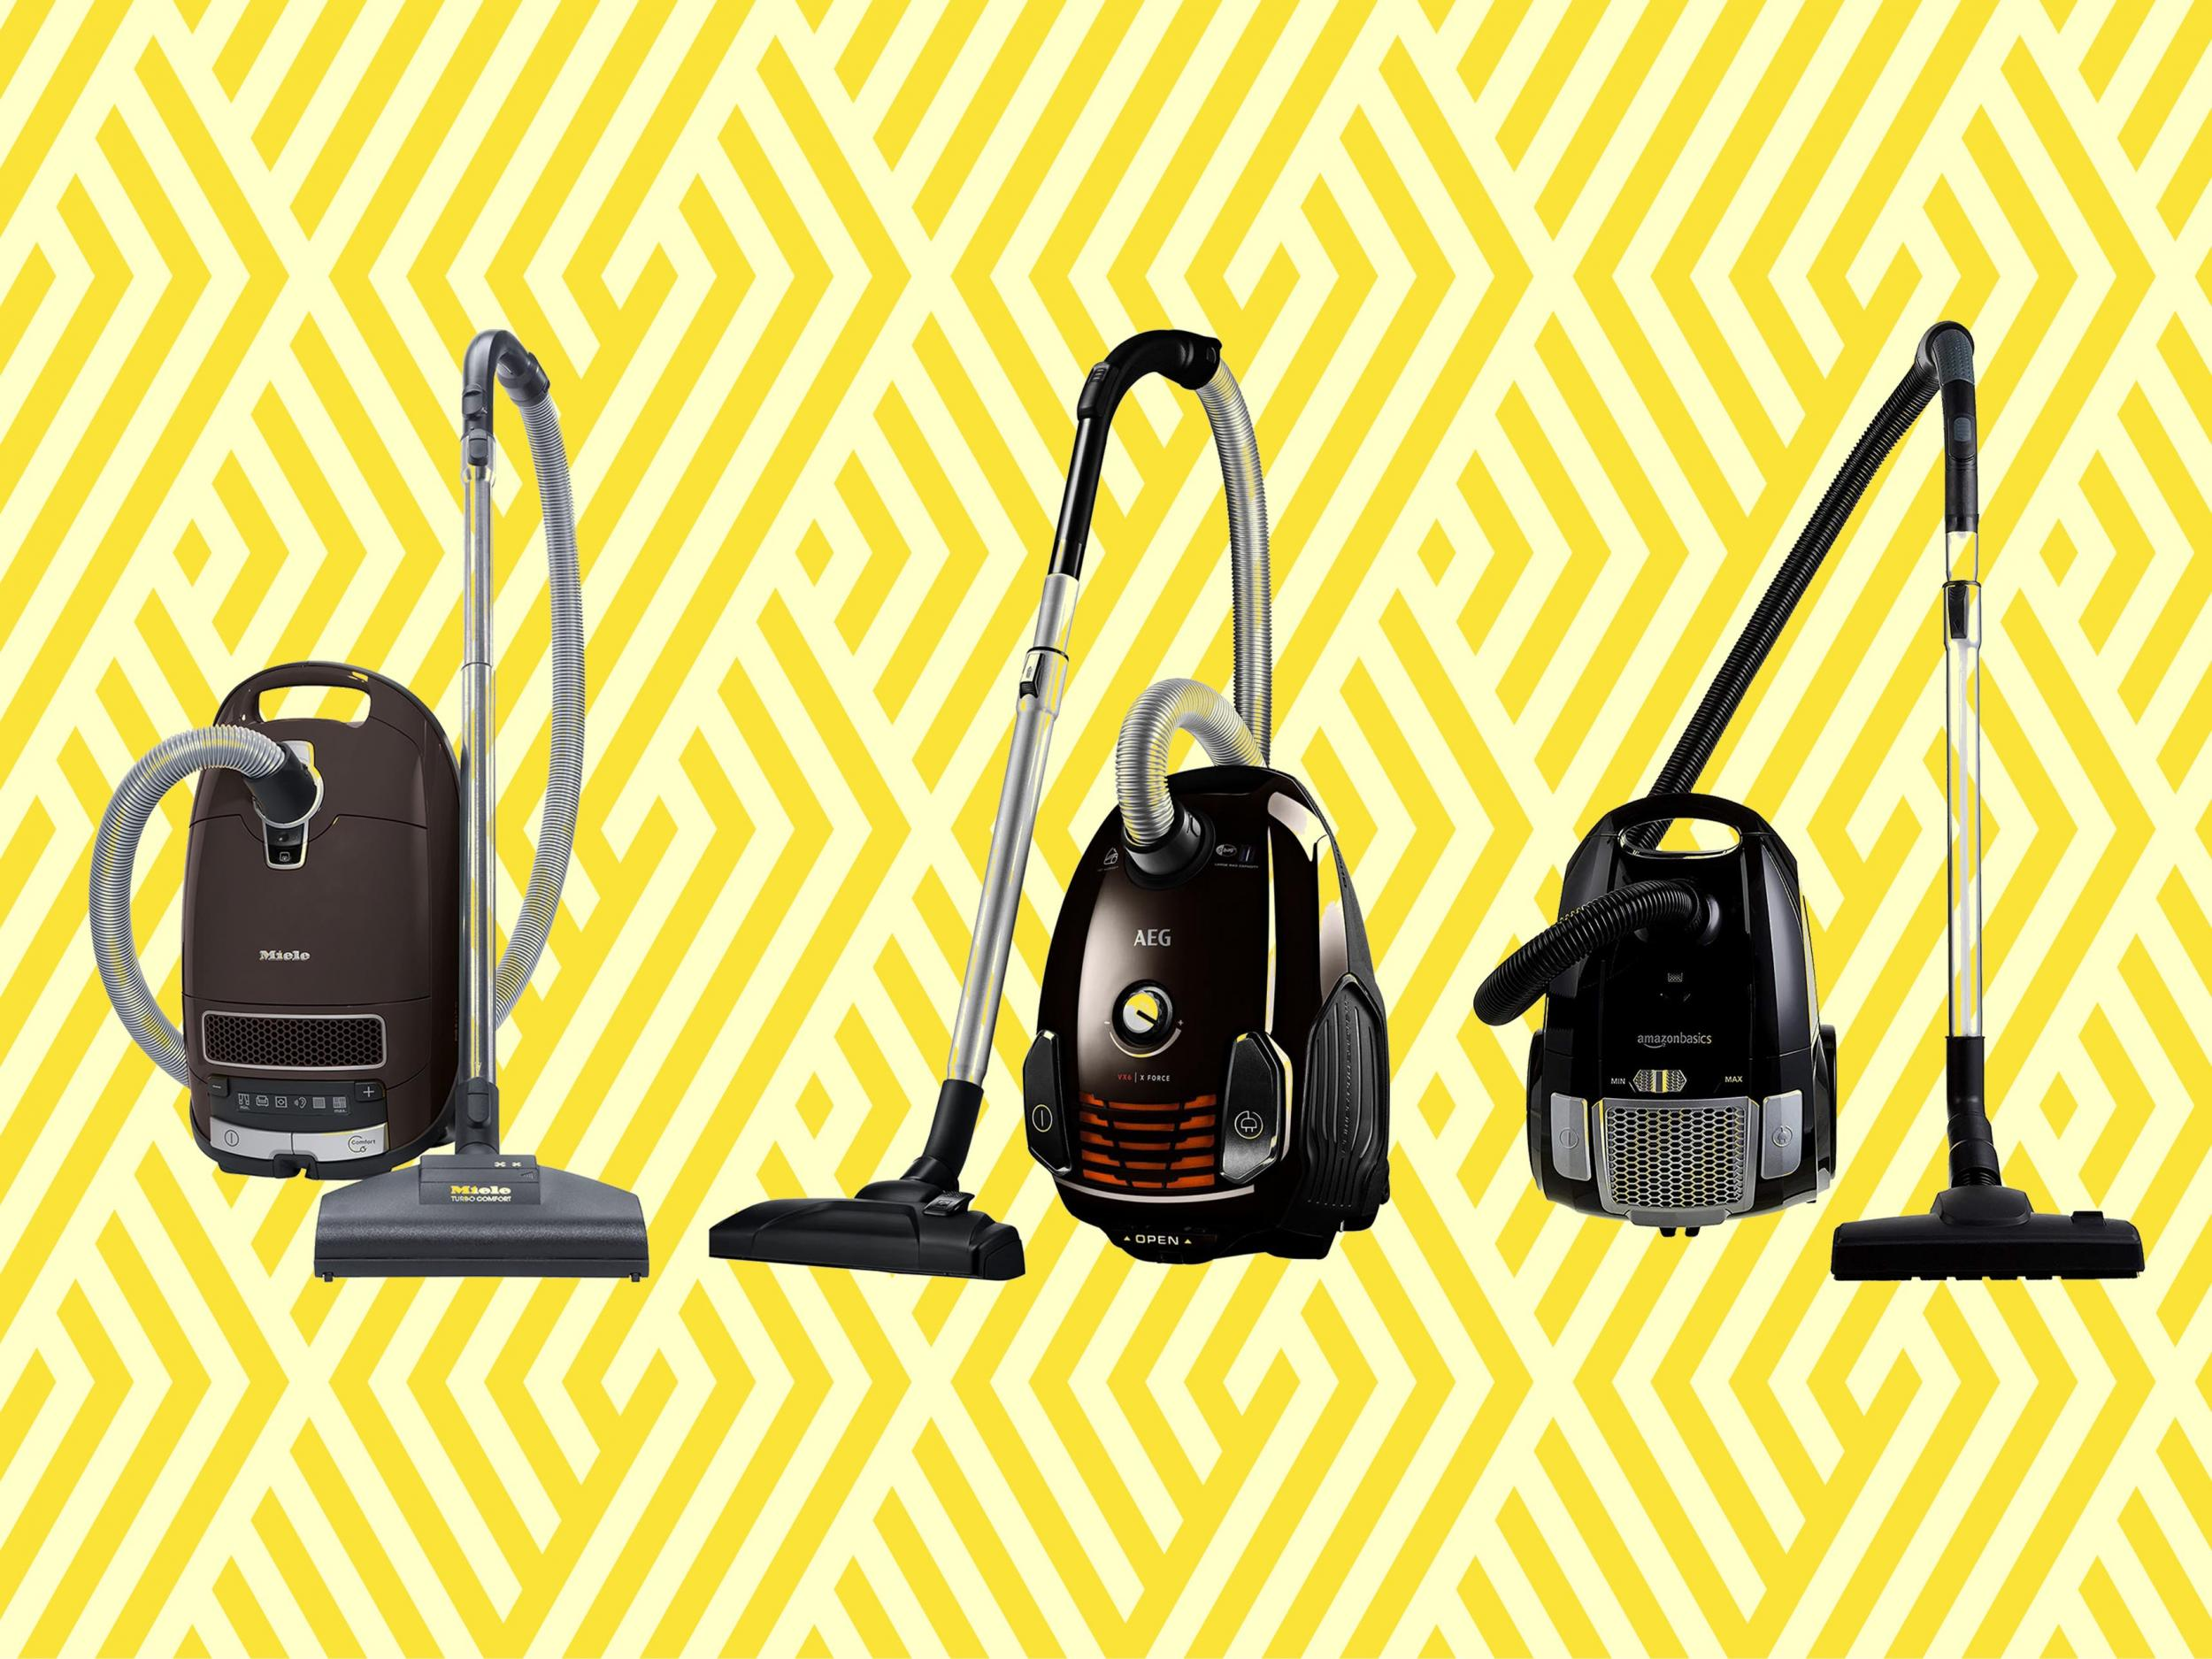 static.independent.co.uks3fs publicthumbnailsimage2019091012best vacuum cleaners indybest.jpg